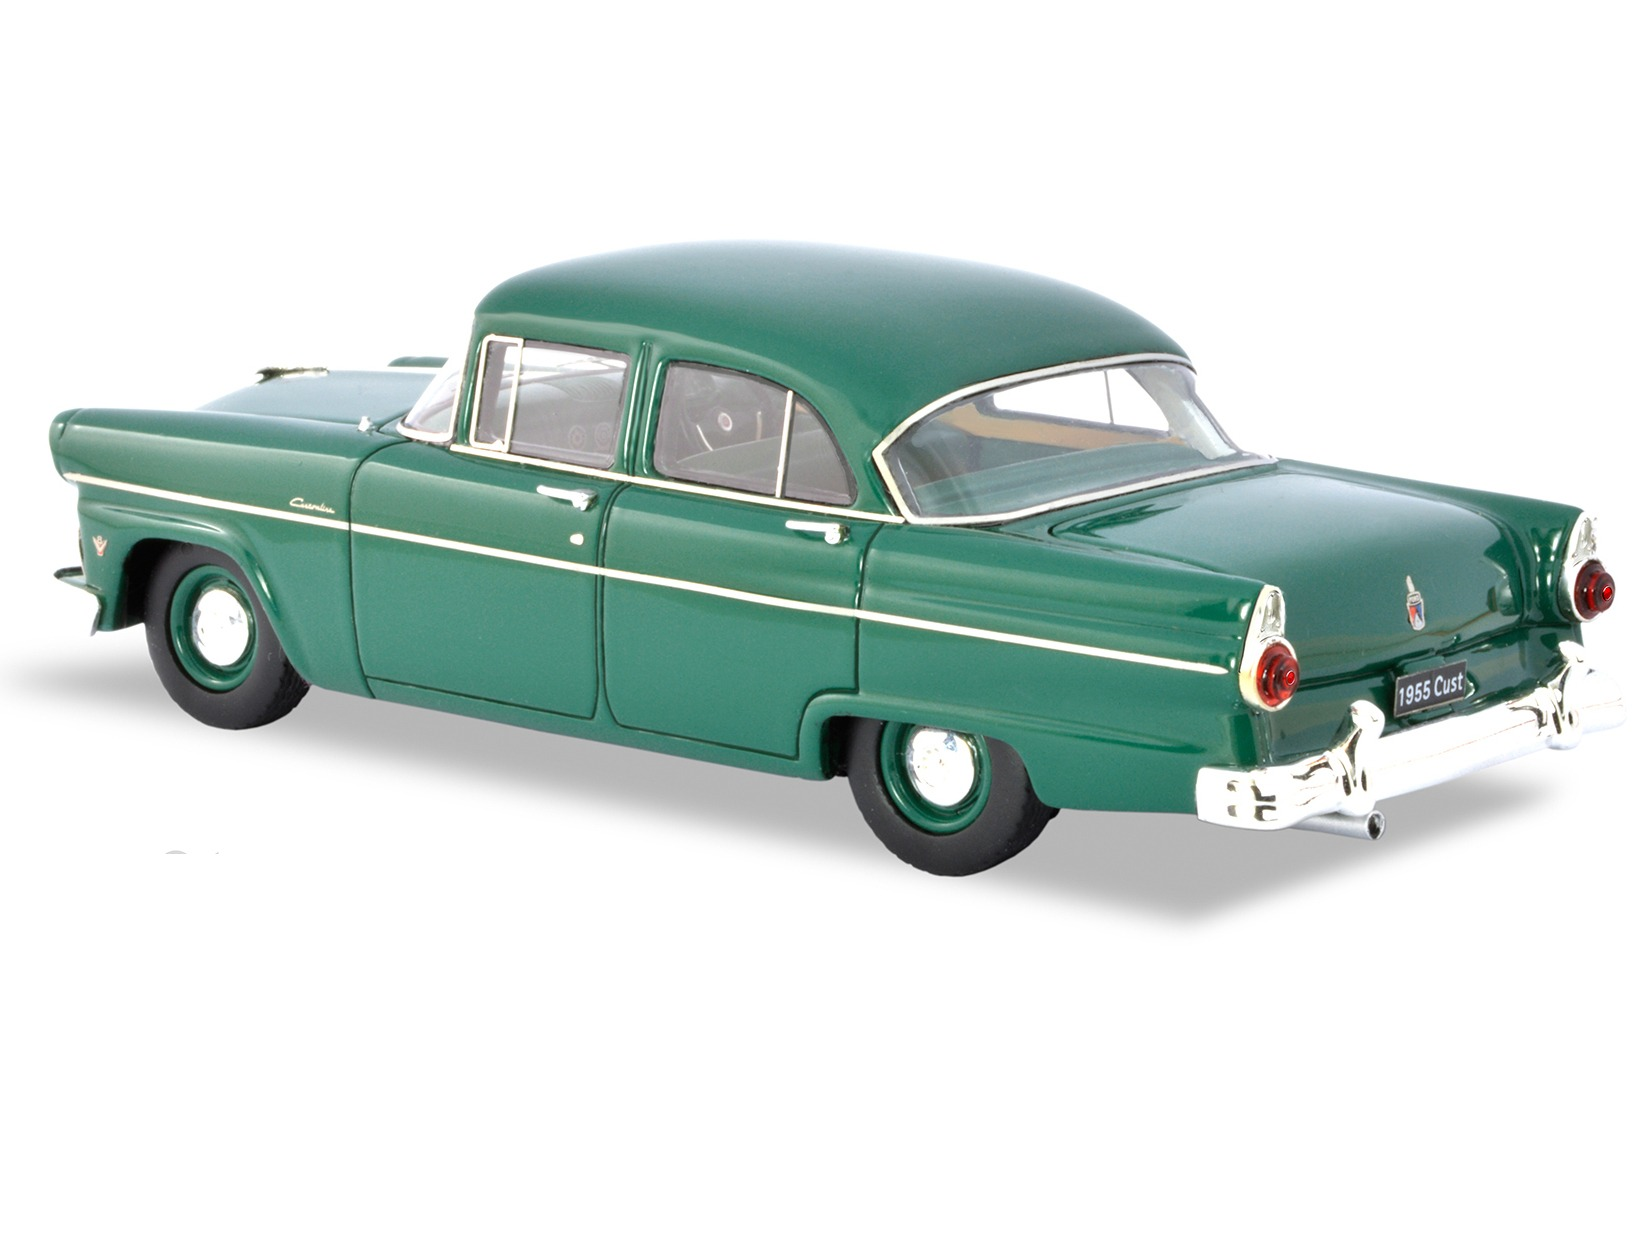 1955 Customline Sedan – Killarney Green